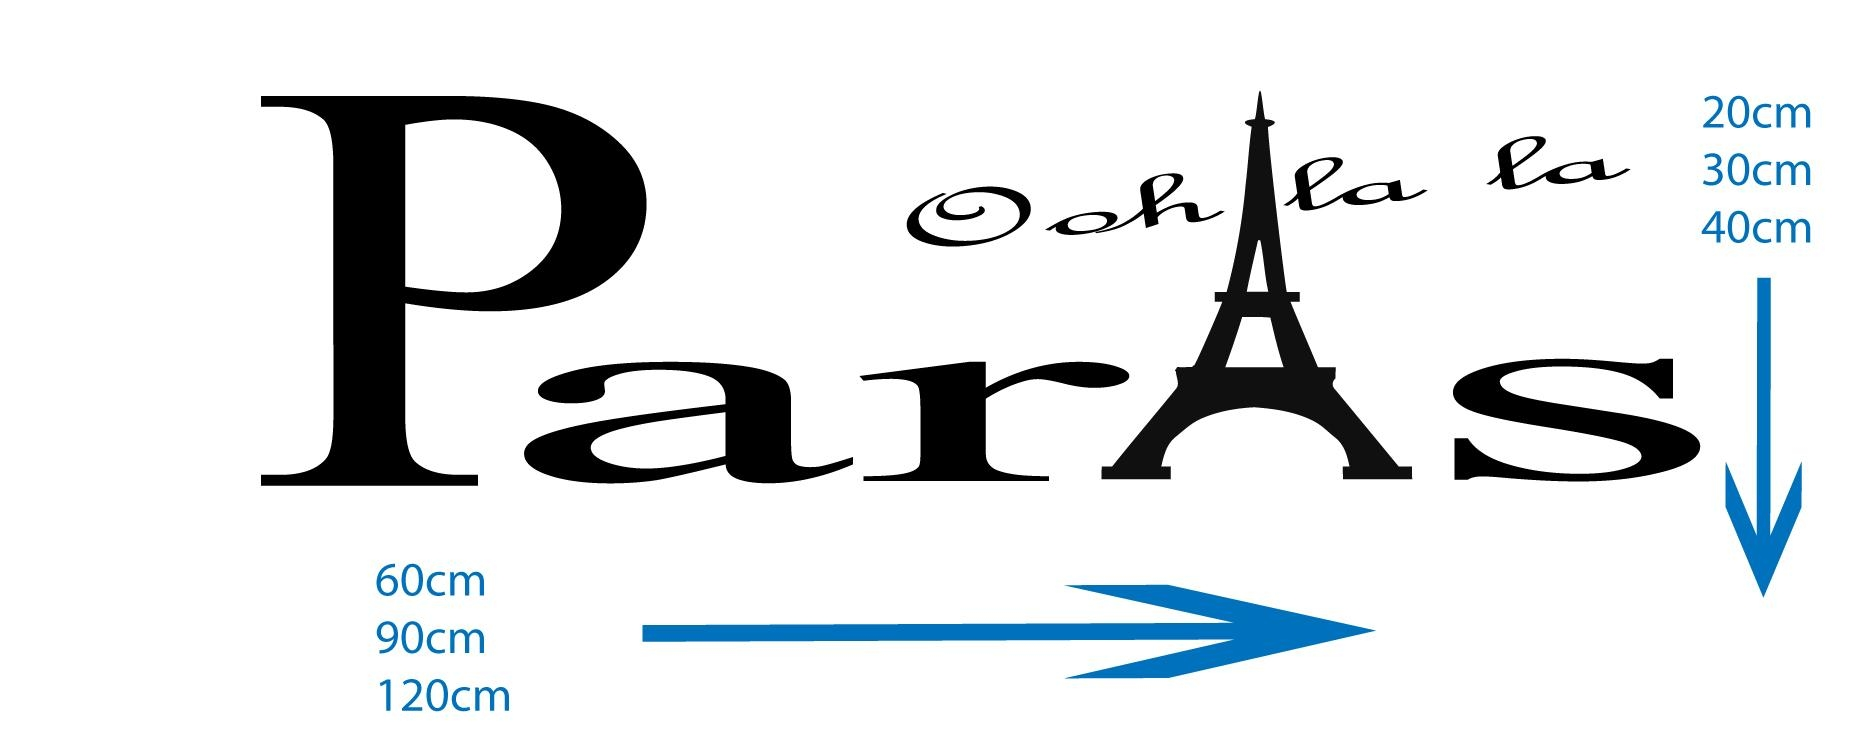 Paris, Ooh La La, With Eiffel Tower Vinyl Wall Art Decal Sticker Within Paris Vinyl Wall Art (View 2 of 20)